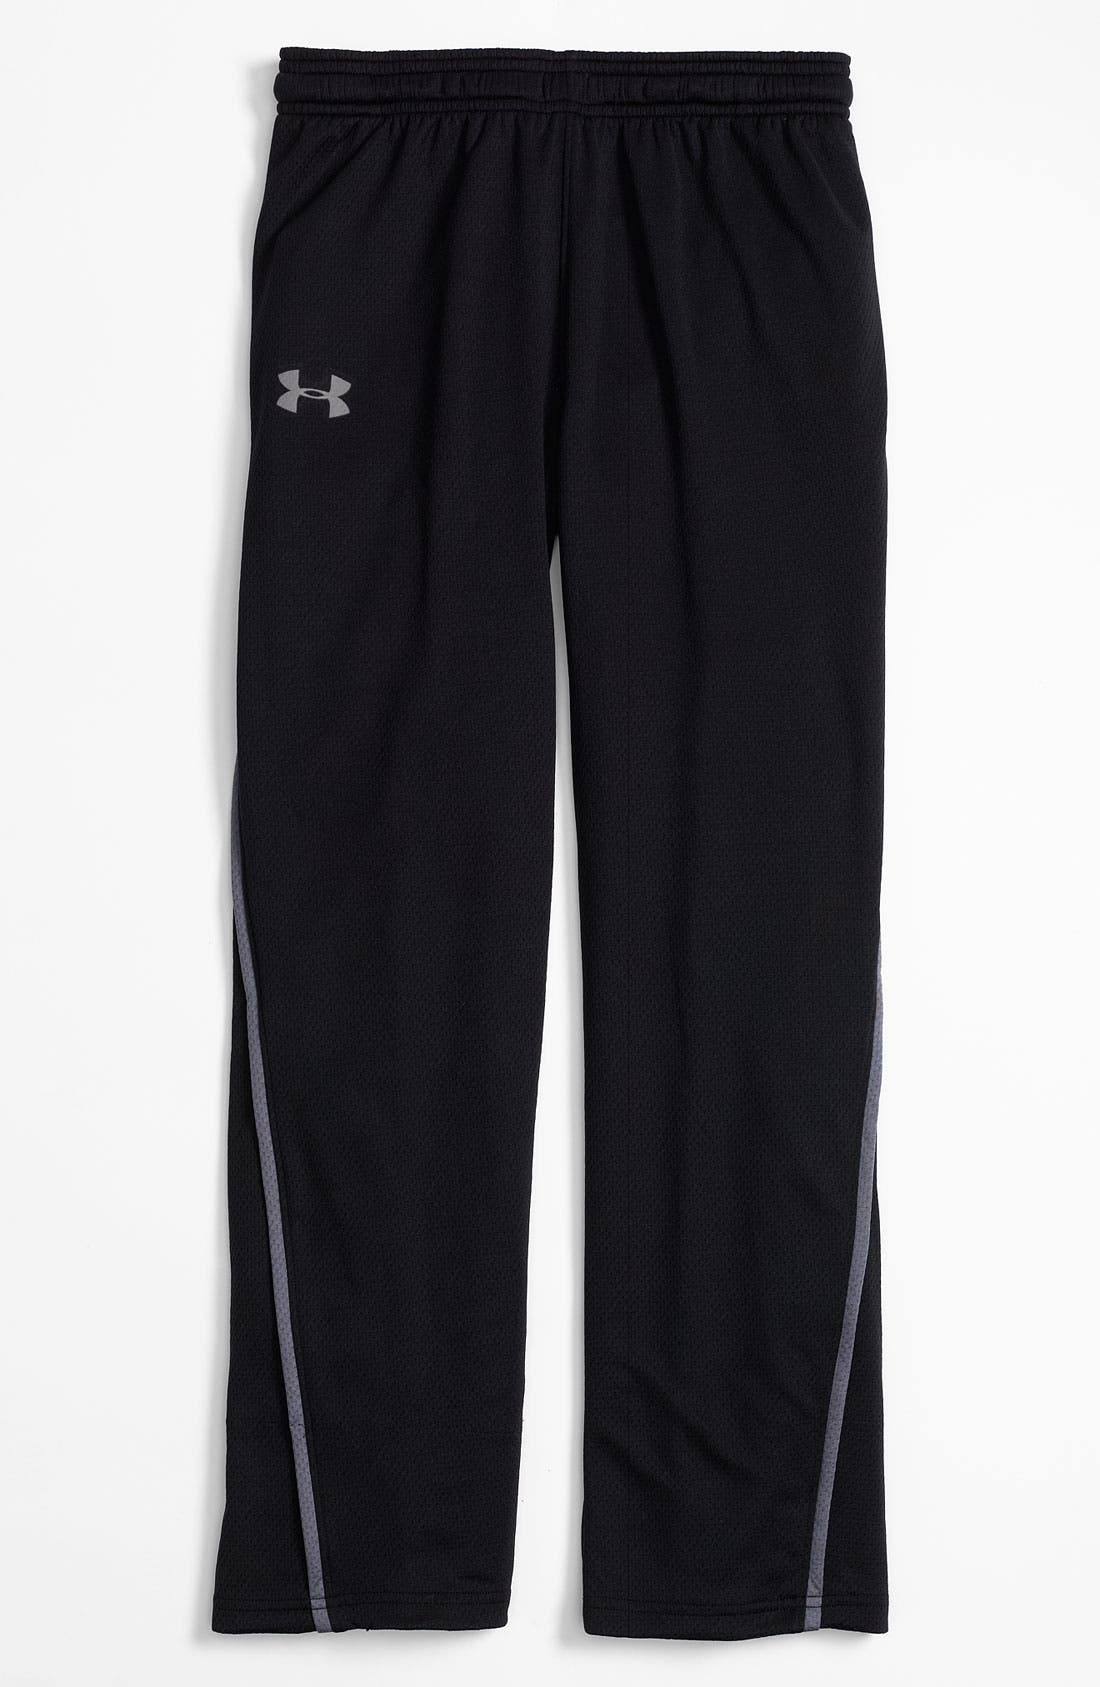 Alternate Image 1 Selected - Under Armour 'Catalyst' Pants (Big Boys)